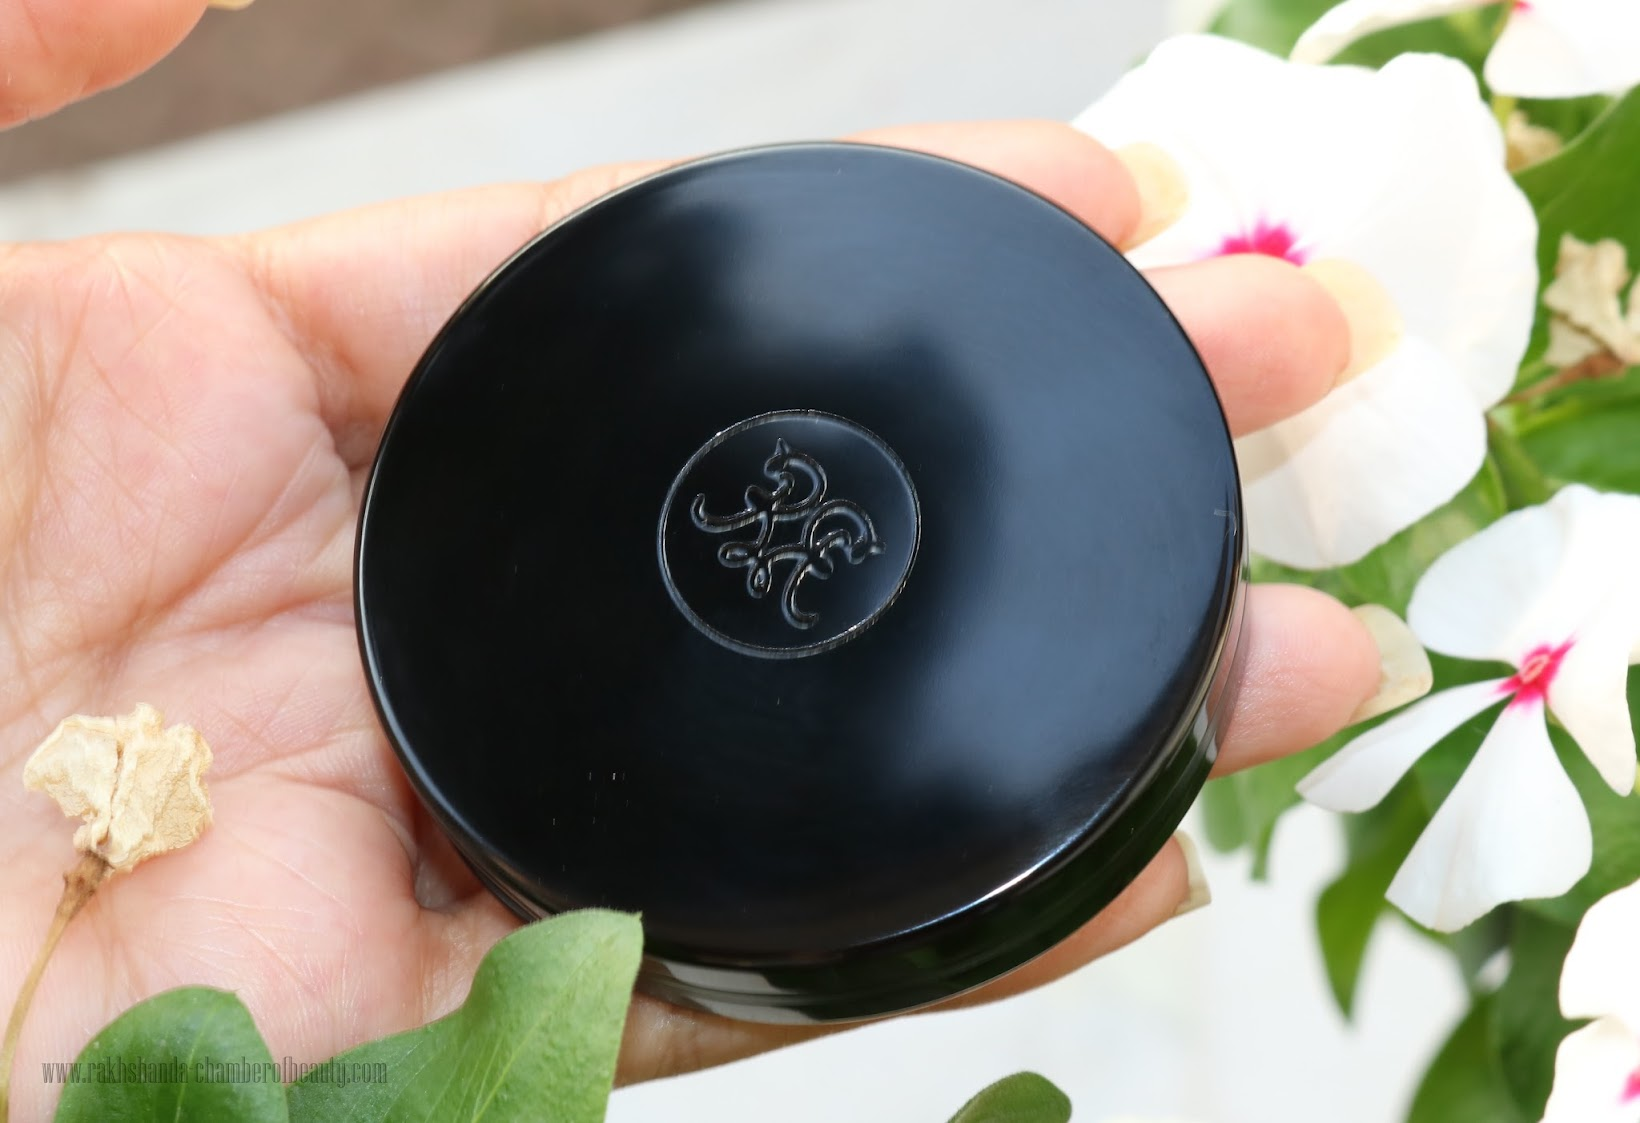 Rouge Bunny Rouge For The Love of Roses Original Skin blush- review, swatches & FOTD   New & Improved, Indian beauty blogger, Chamber of Beauty